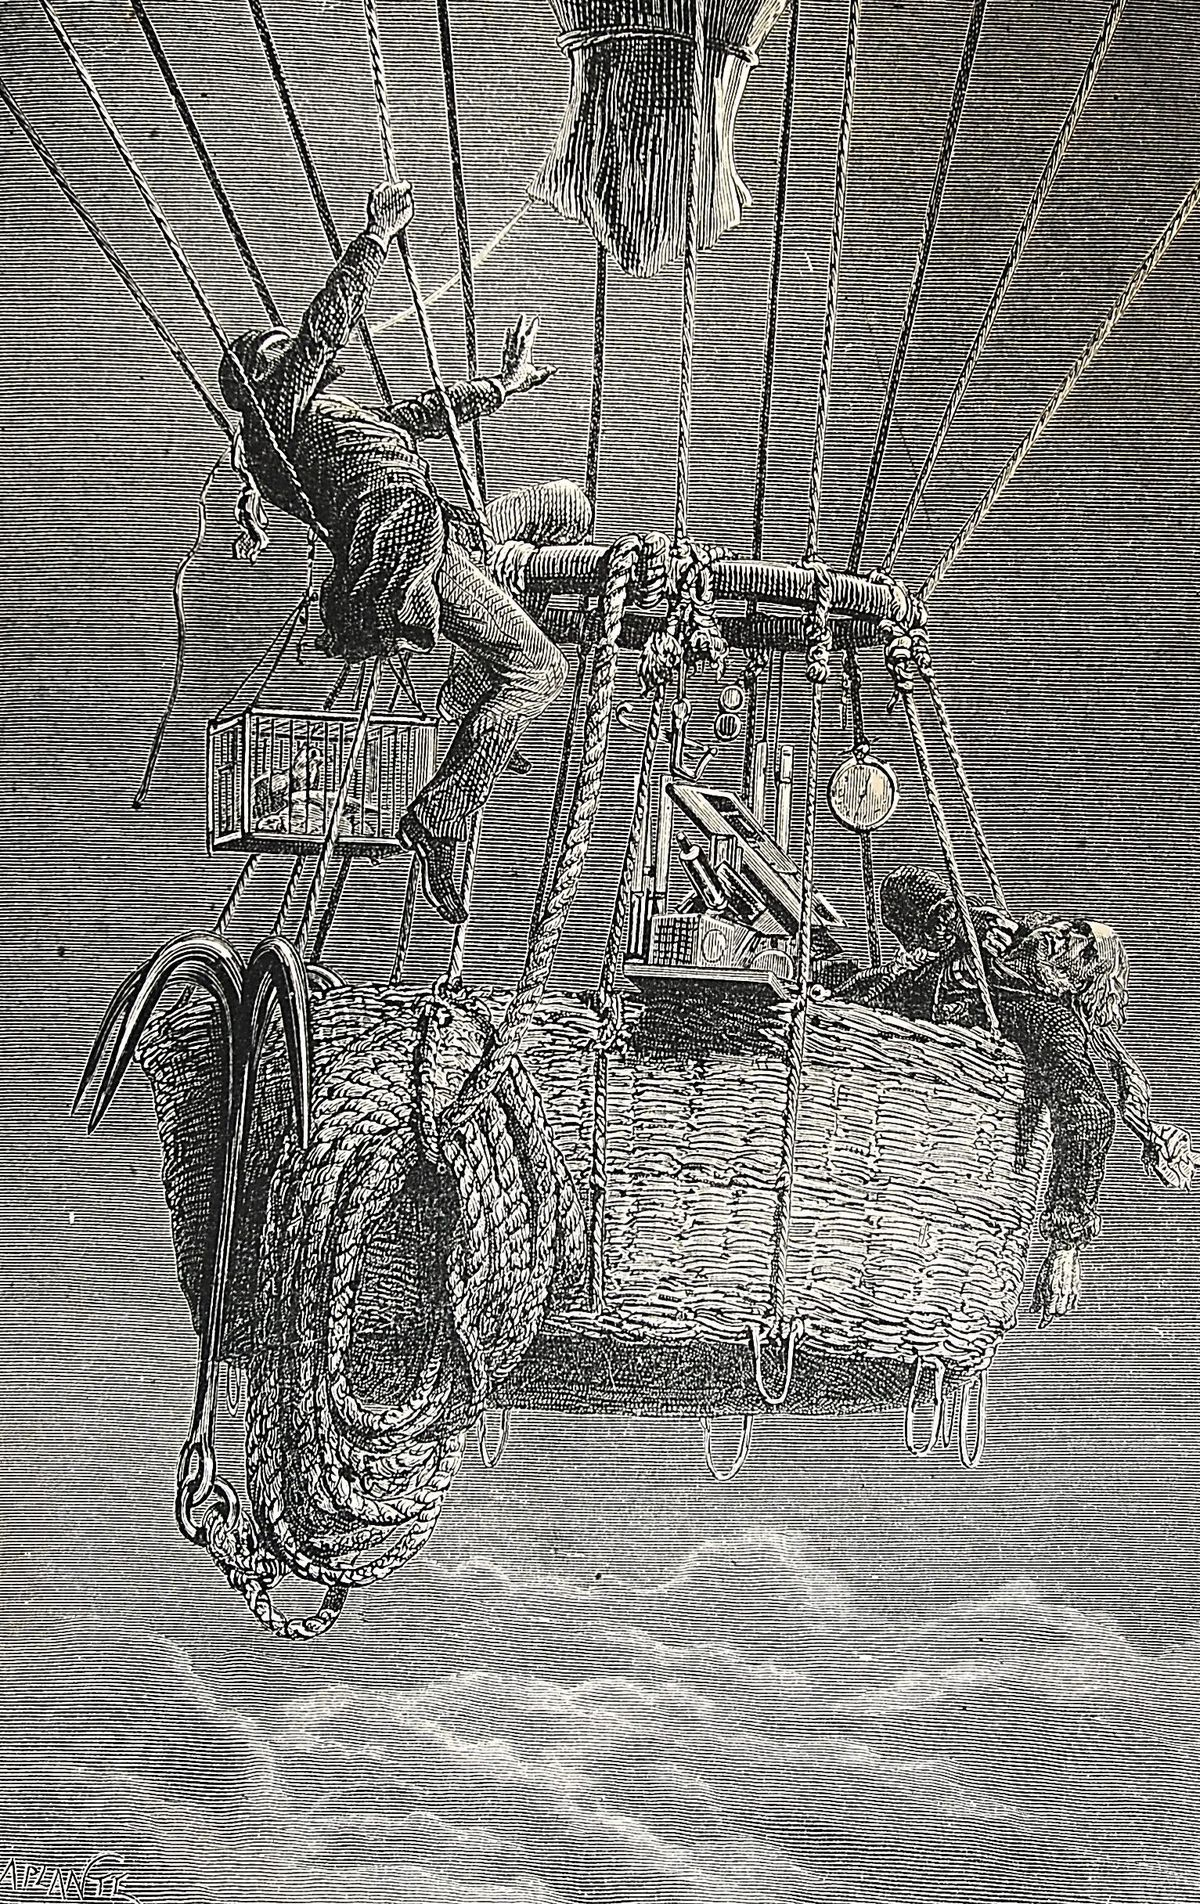 An illustration of Henry Coxwell and James Glaisher